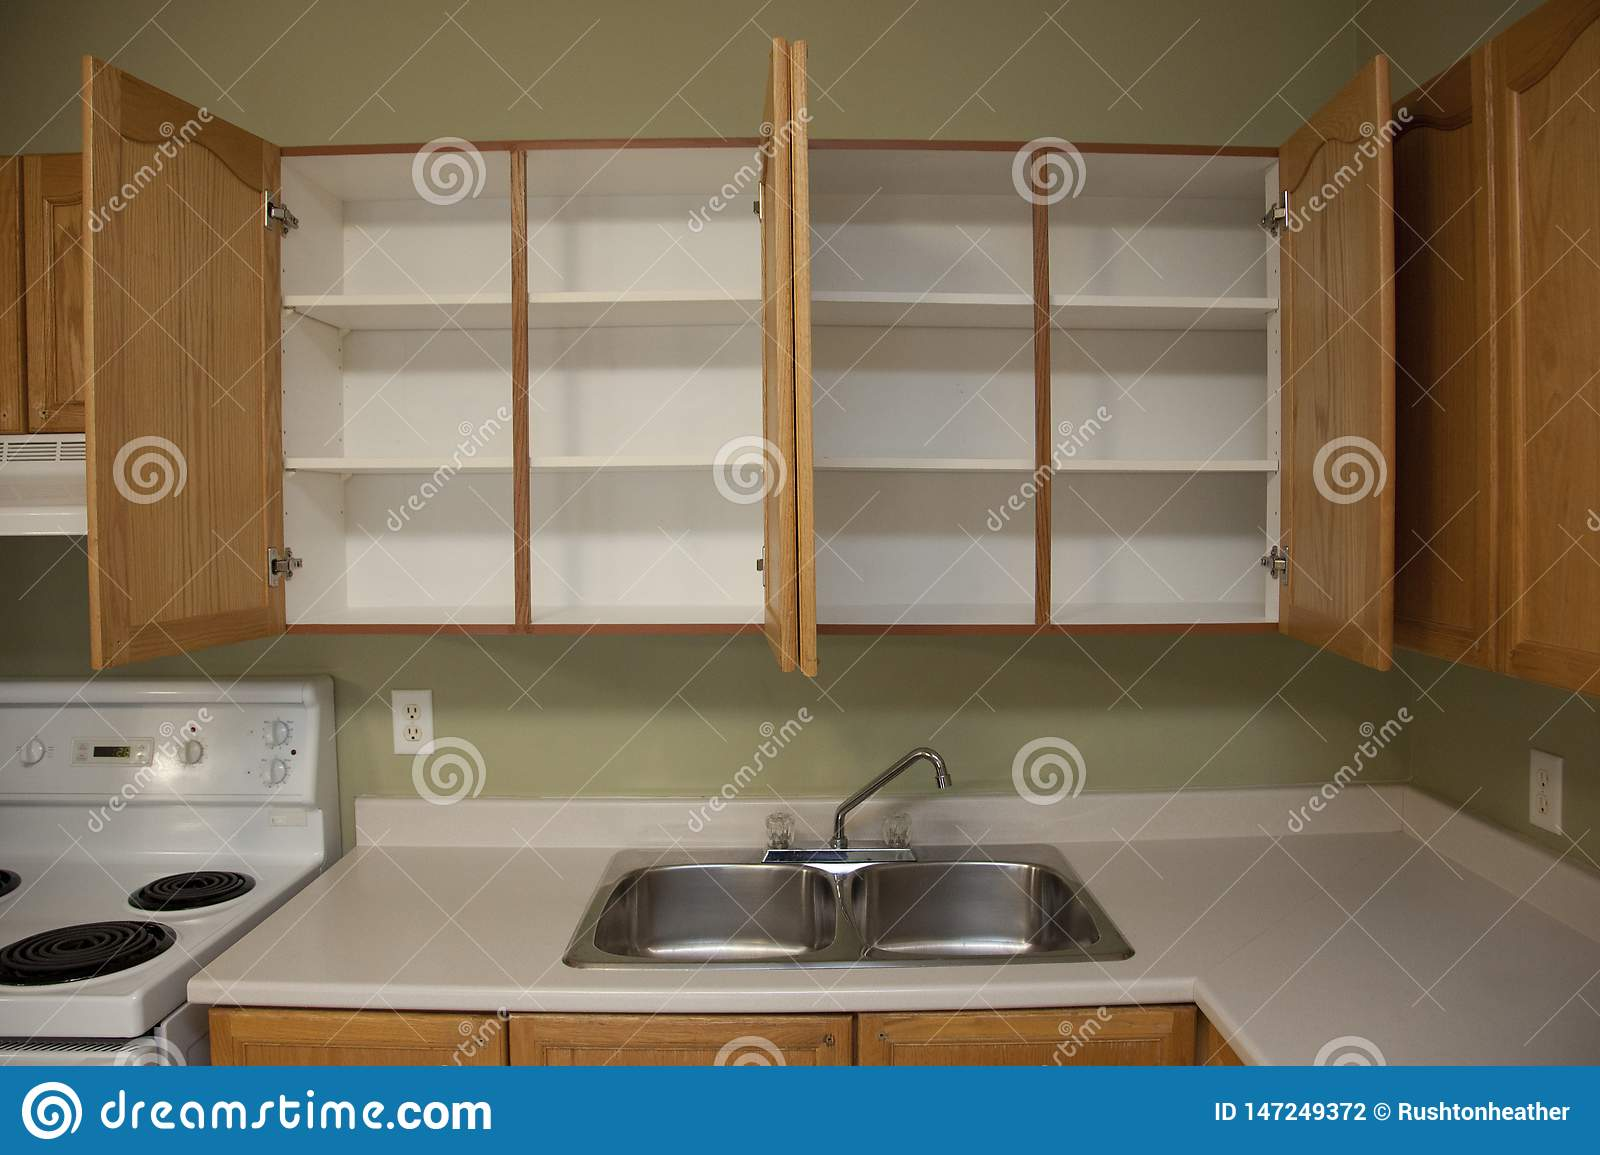 https www dreamstime com two empty cupboards kitchen sink counter cabinets above home apartment image147249372